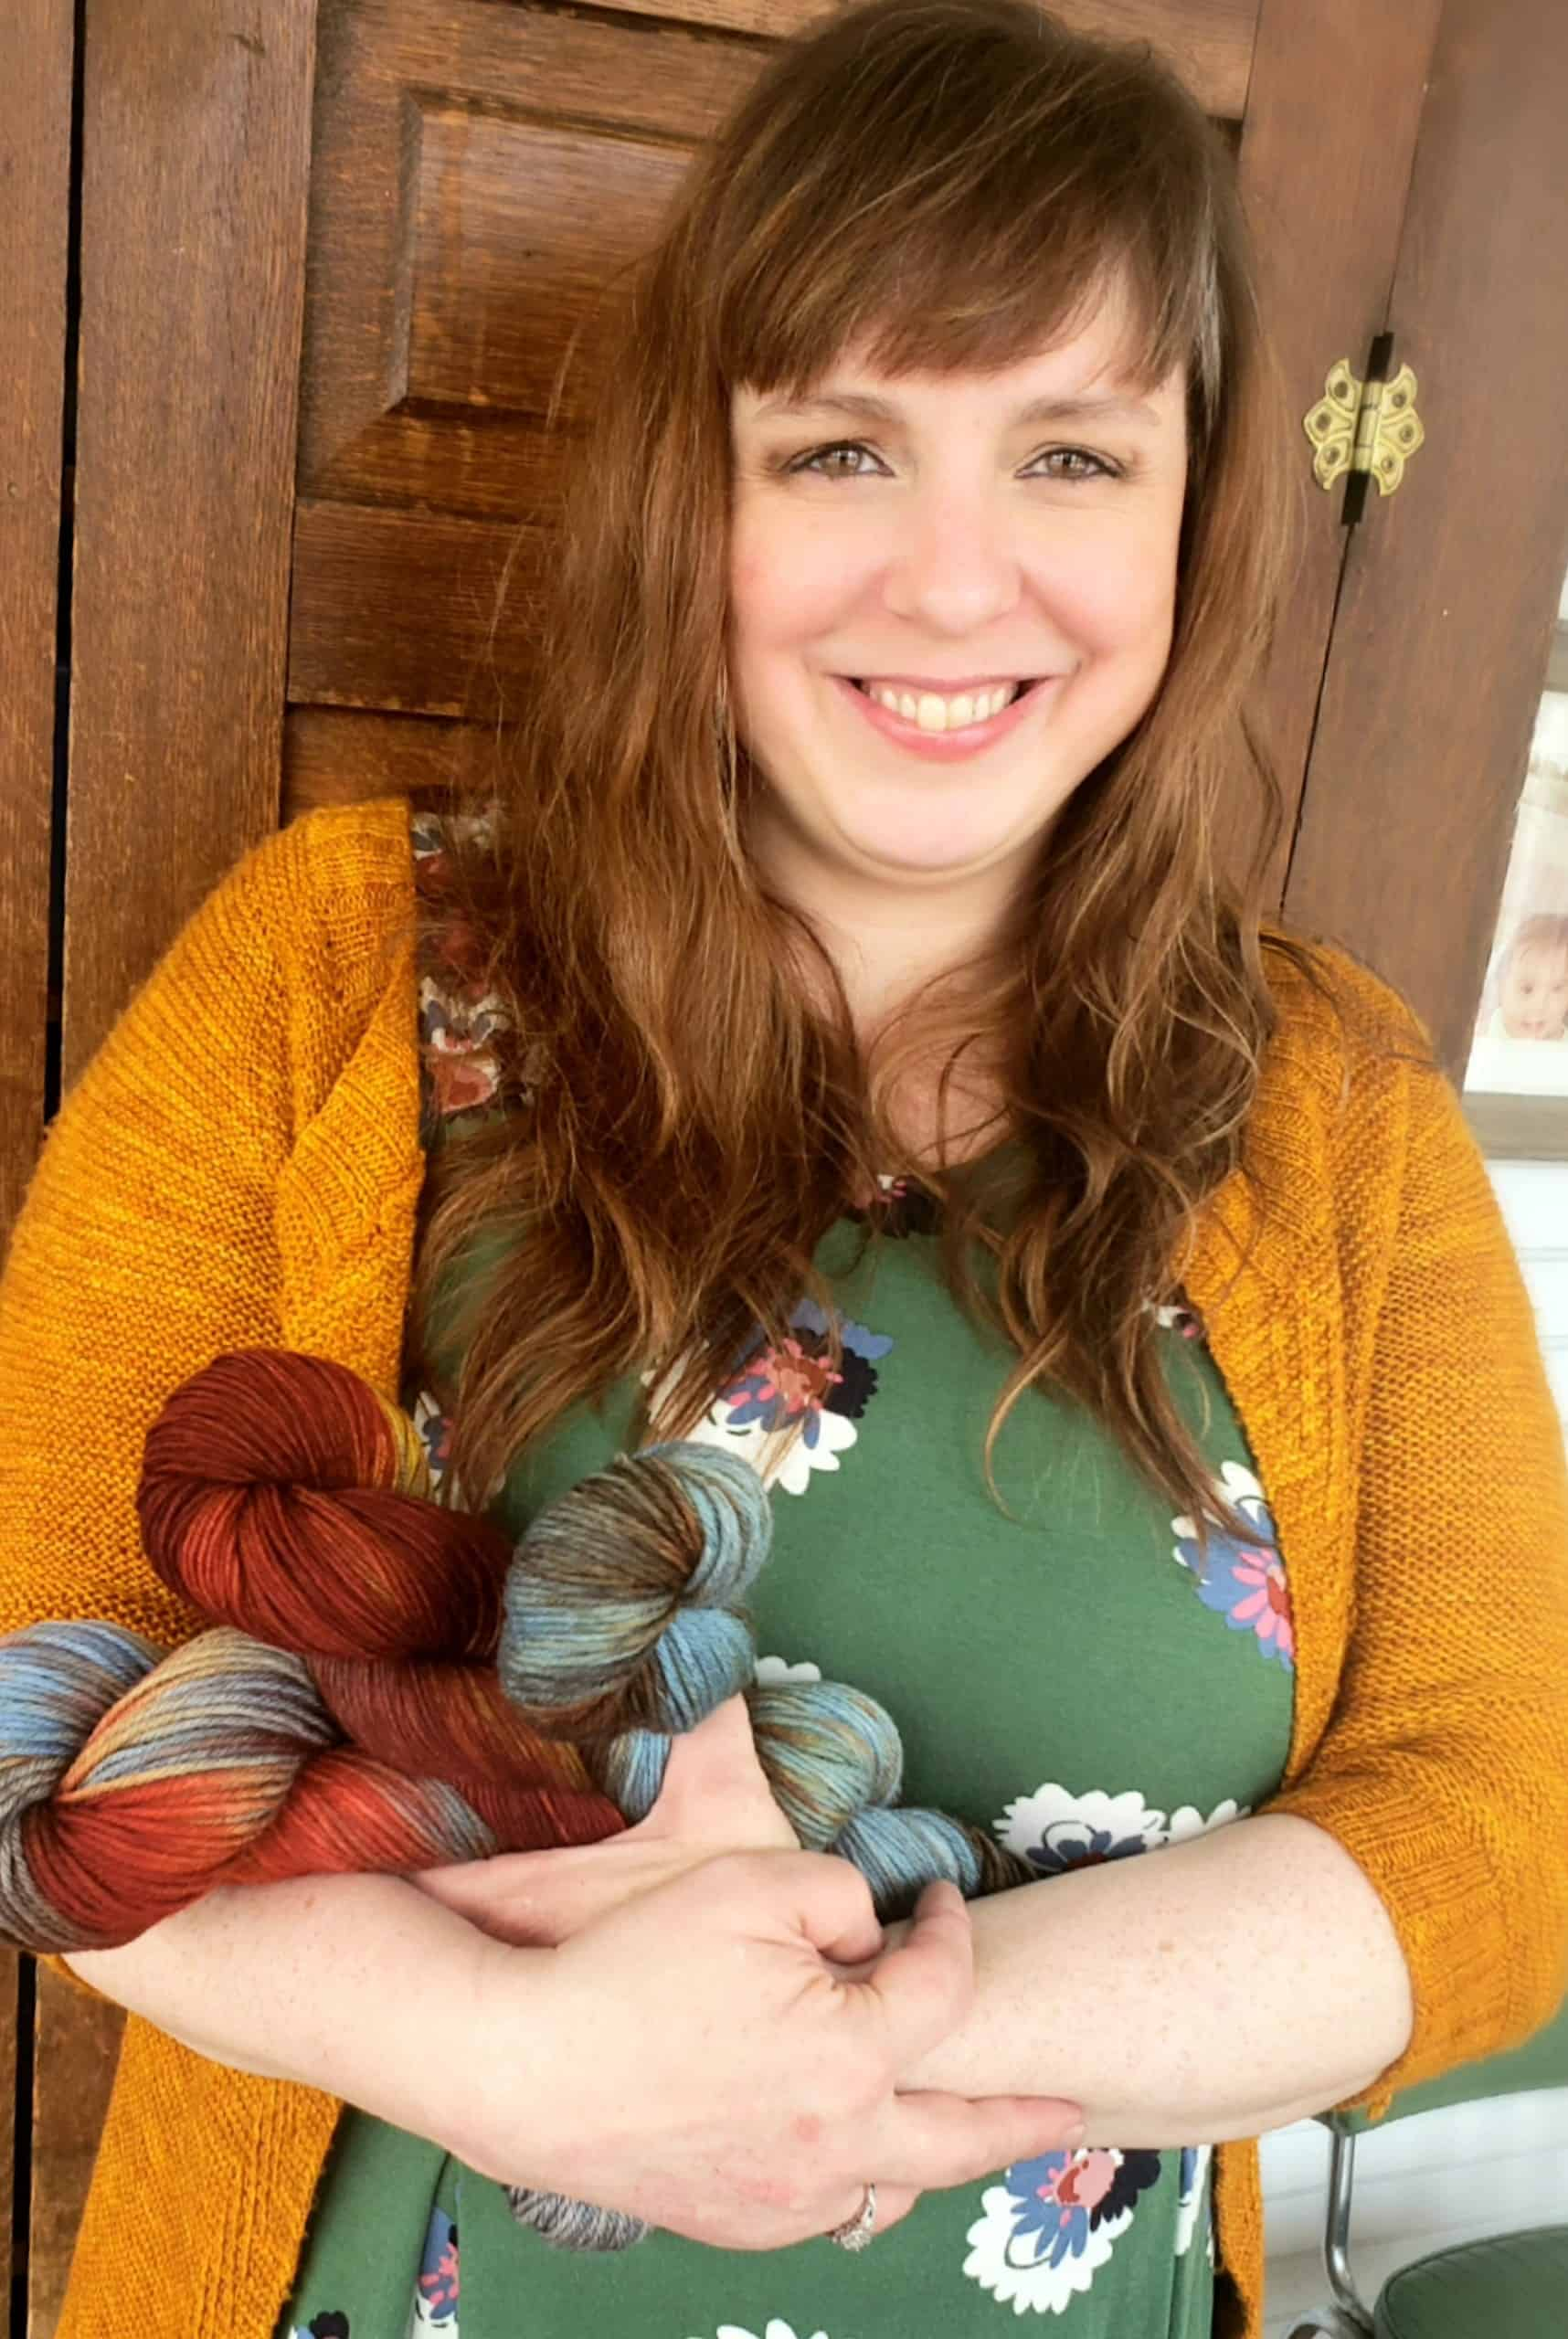 A light-skinned woman with light brown hair wearing a gold sweater holding yarn.